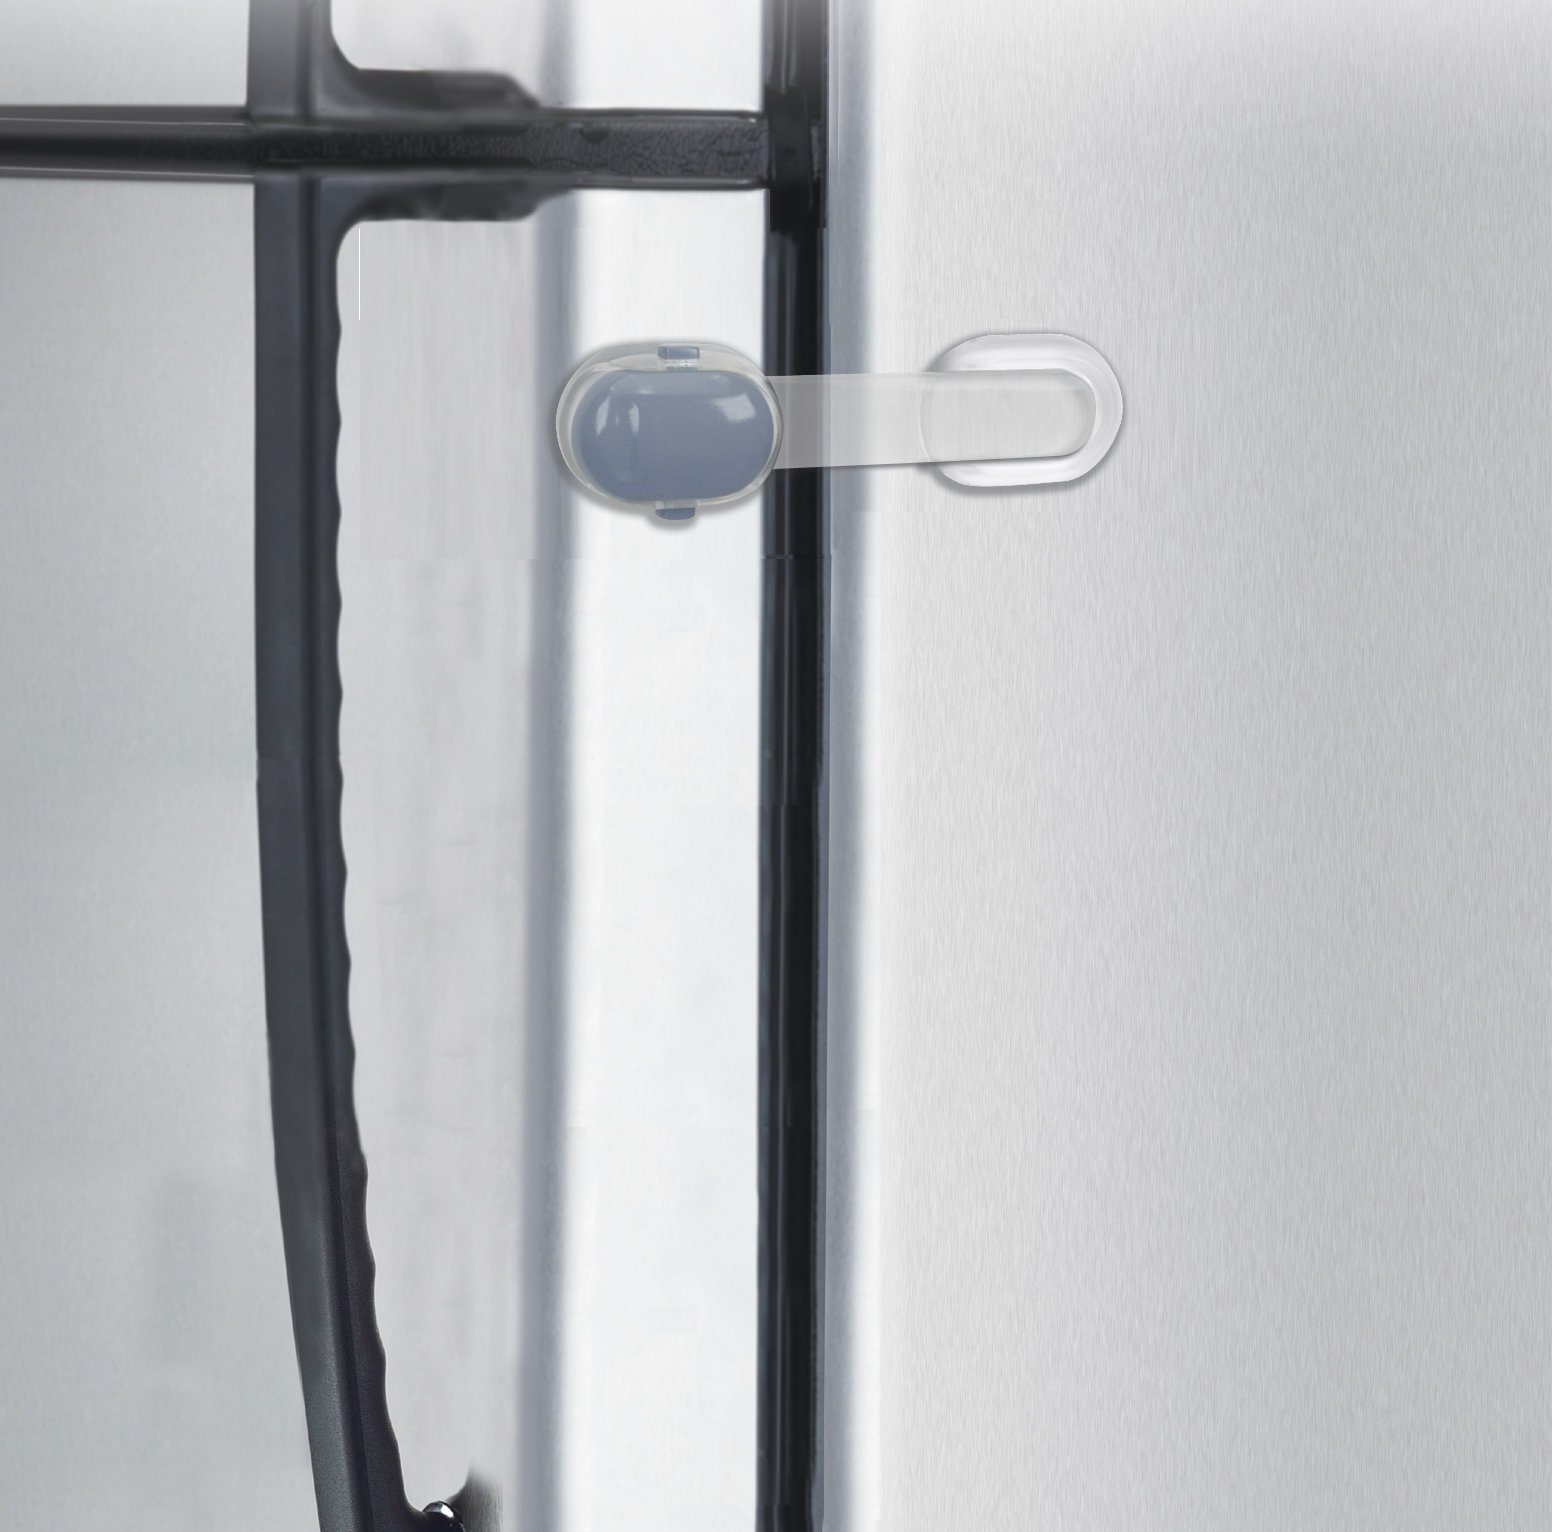 Safety 1st Lock Release Refrigerator Door Lock/Latch, White